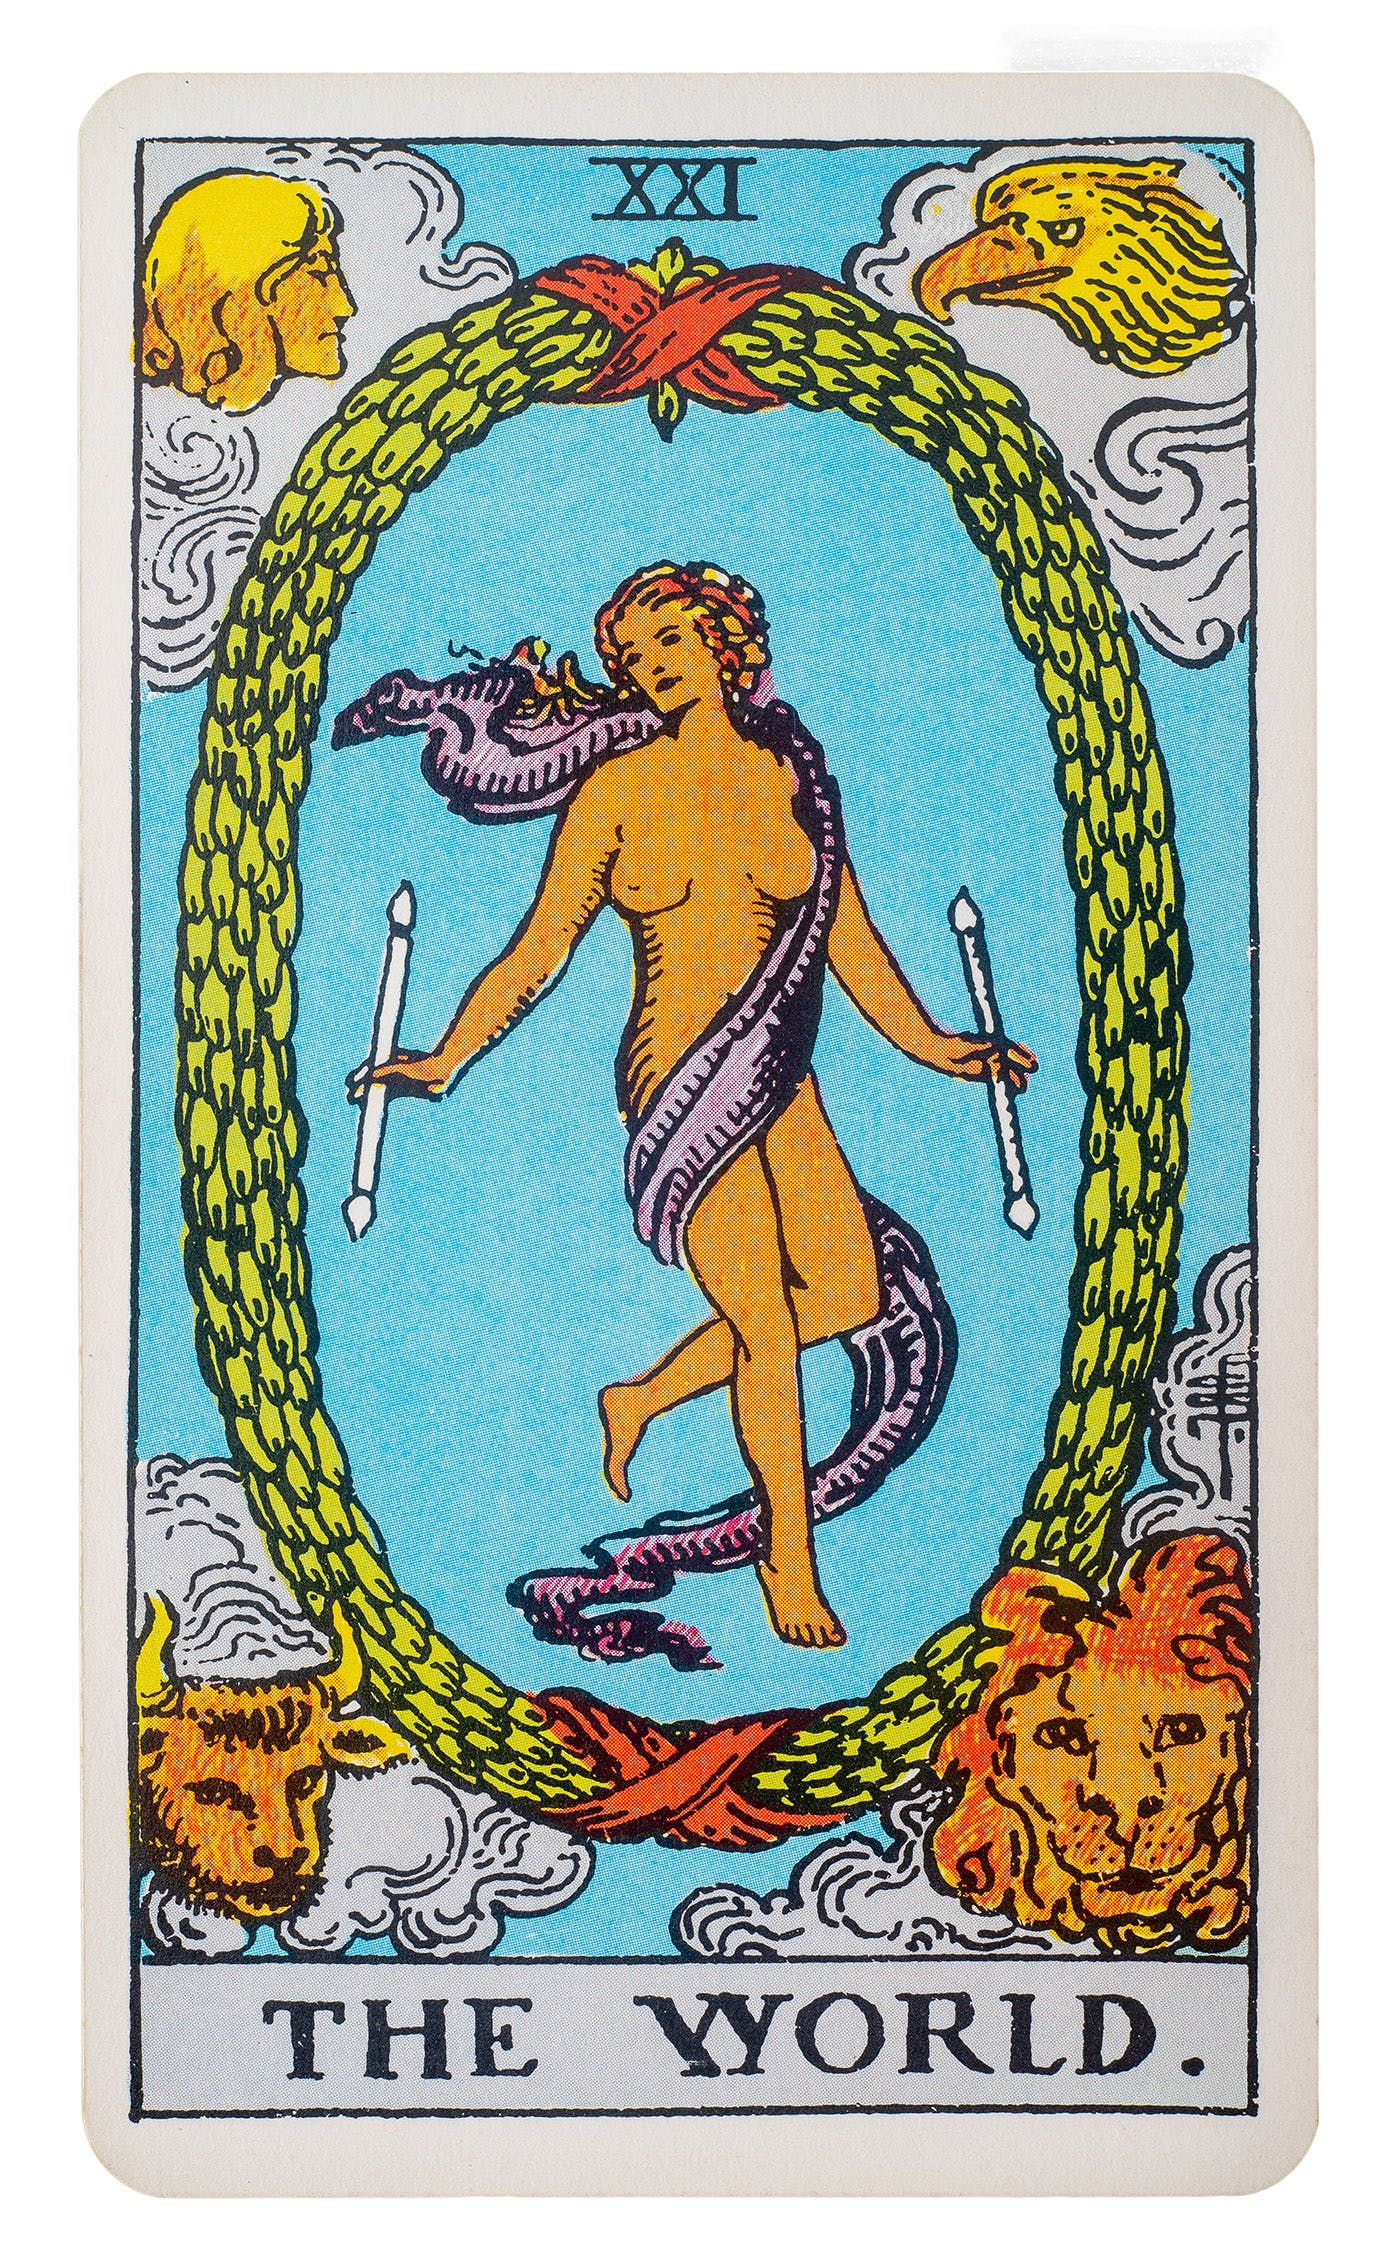 the world card from the rider-waite deck. features the image of a woman wrapped in a silk scarf and holding a staff in each hand. she is surrounded by a green wreath and floating above the earth. various creatures are in each corner of the card.